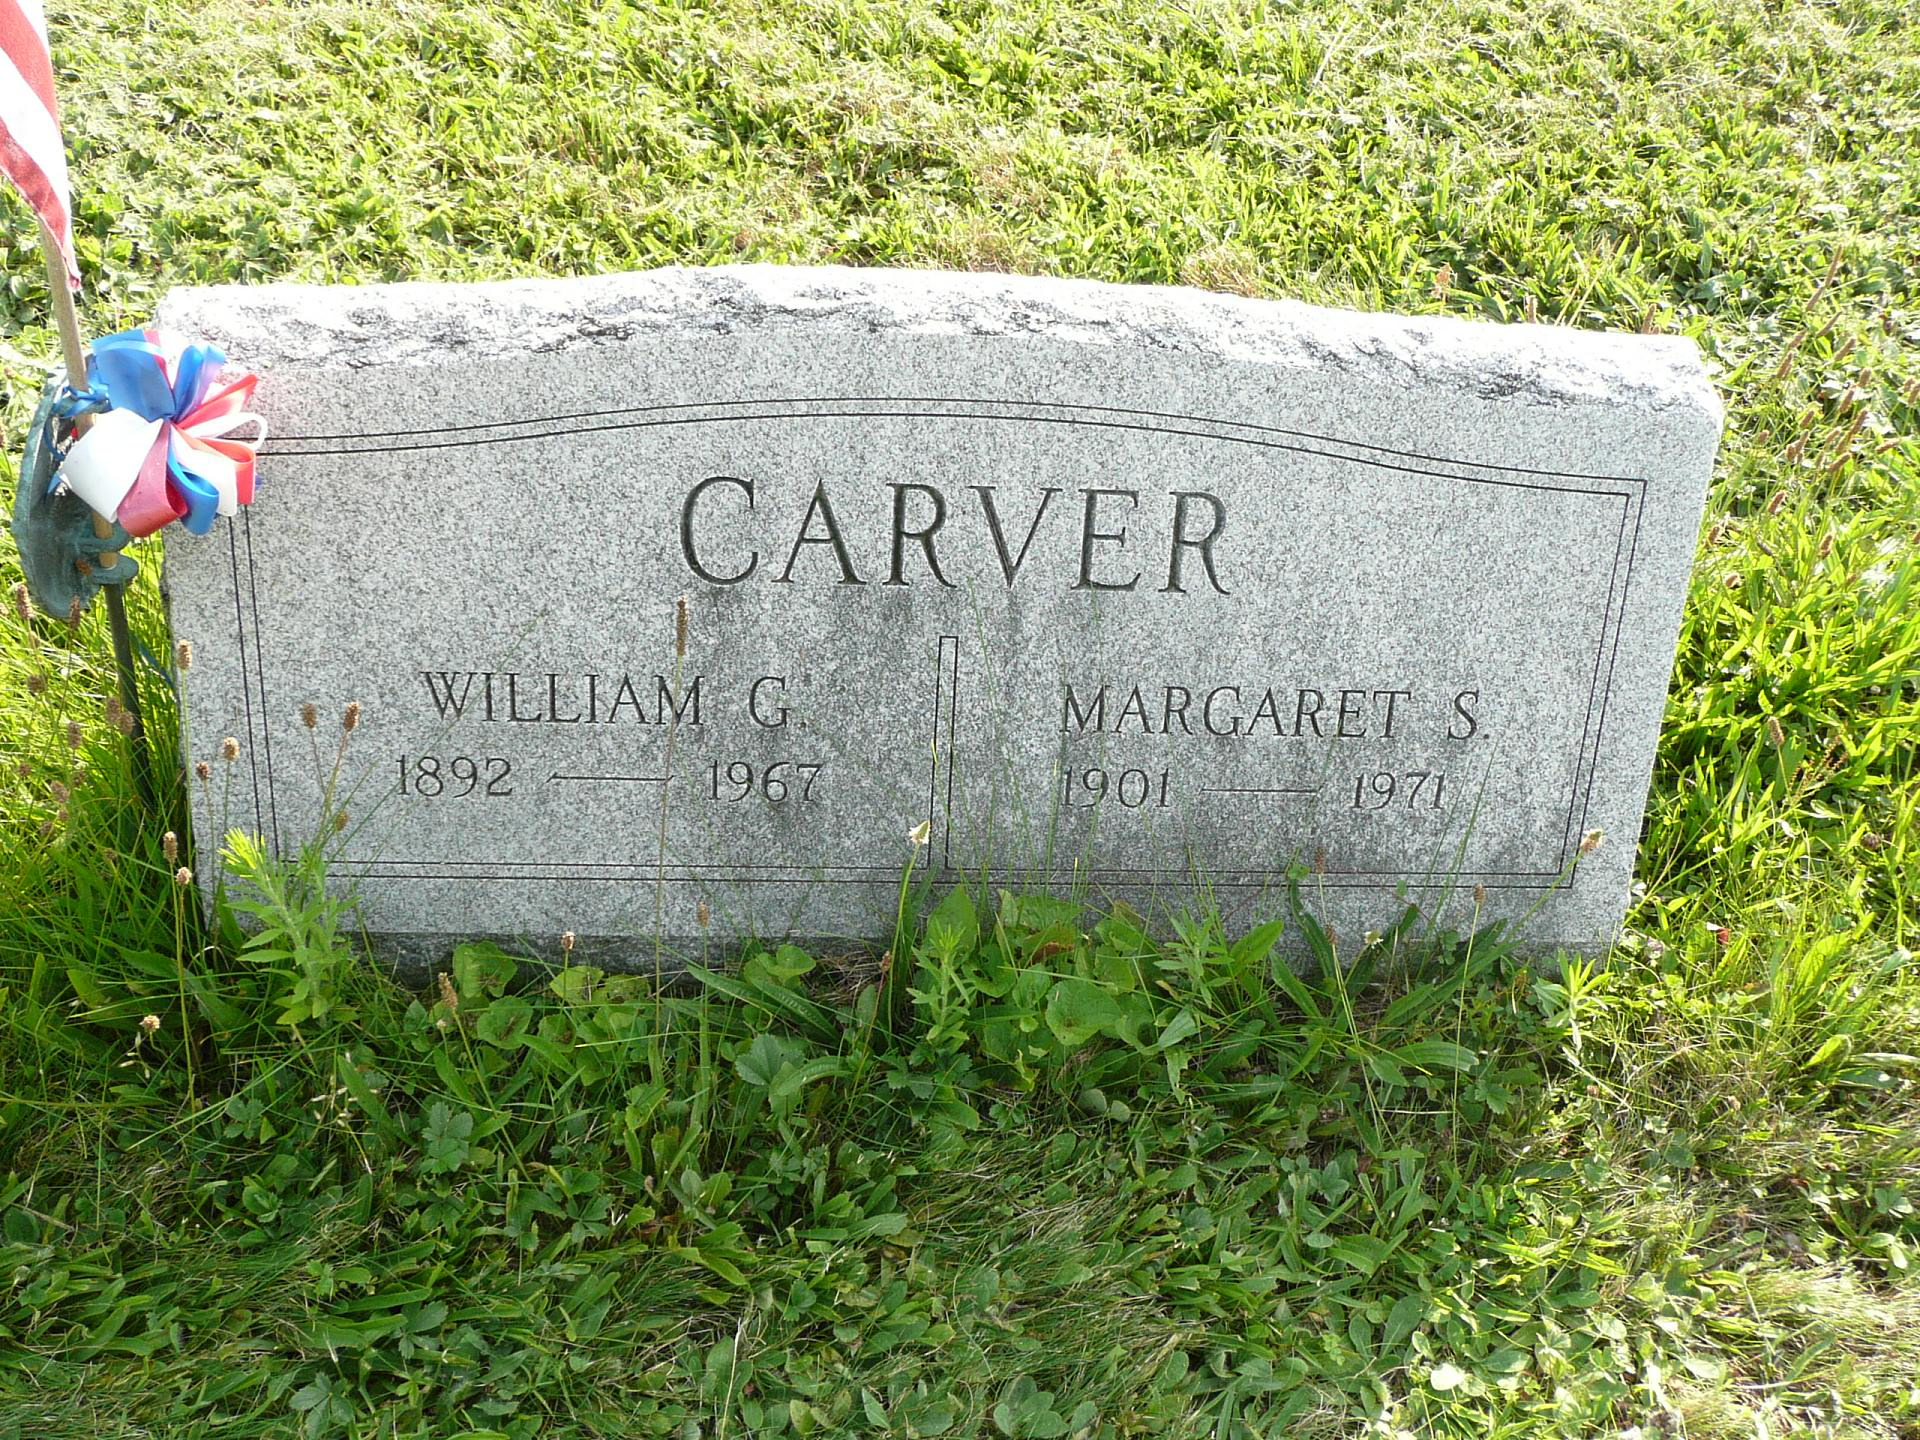 George William Carver